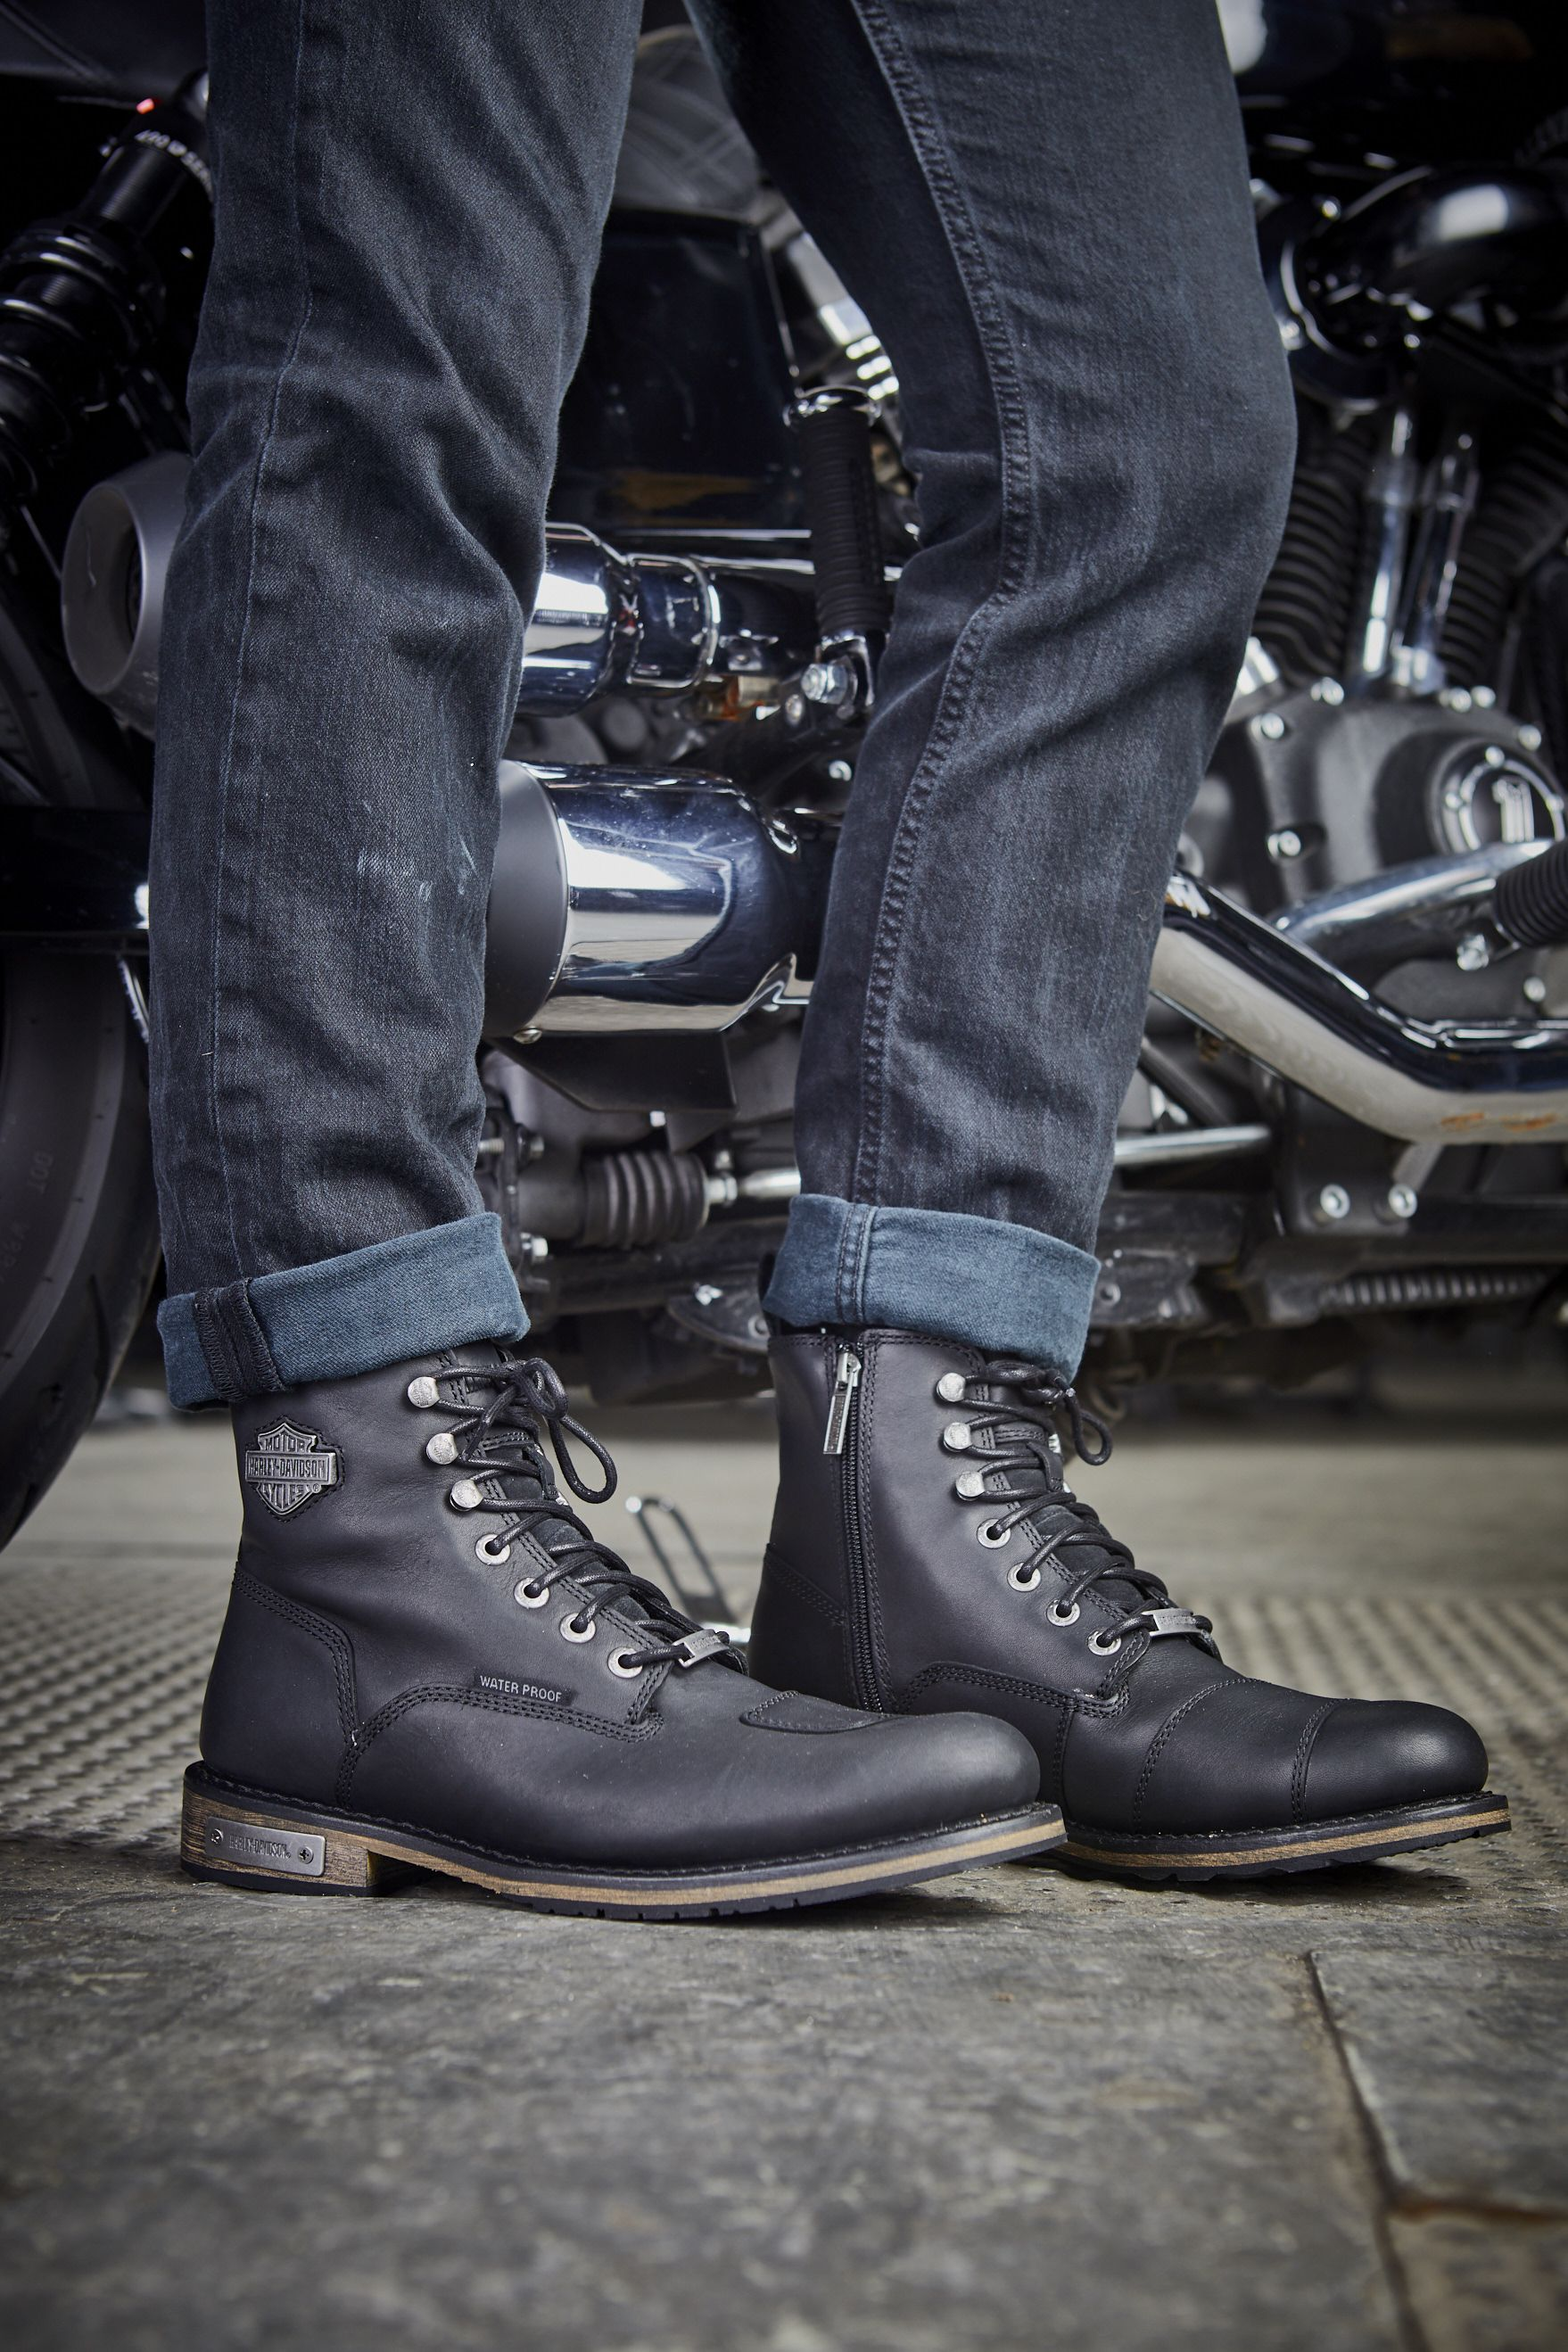 8c50c067ce3f9b Men s Clancy Boot Harley Davidson Dealership